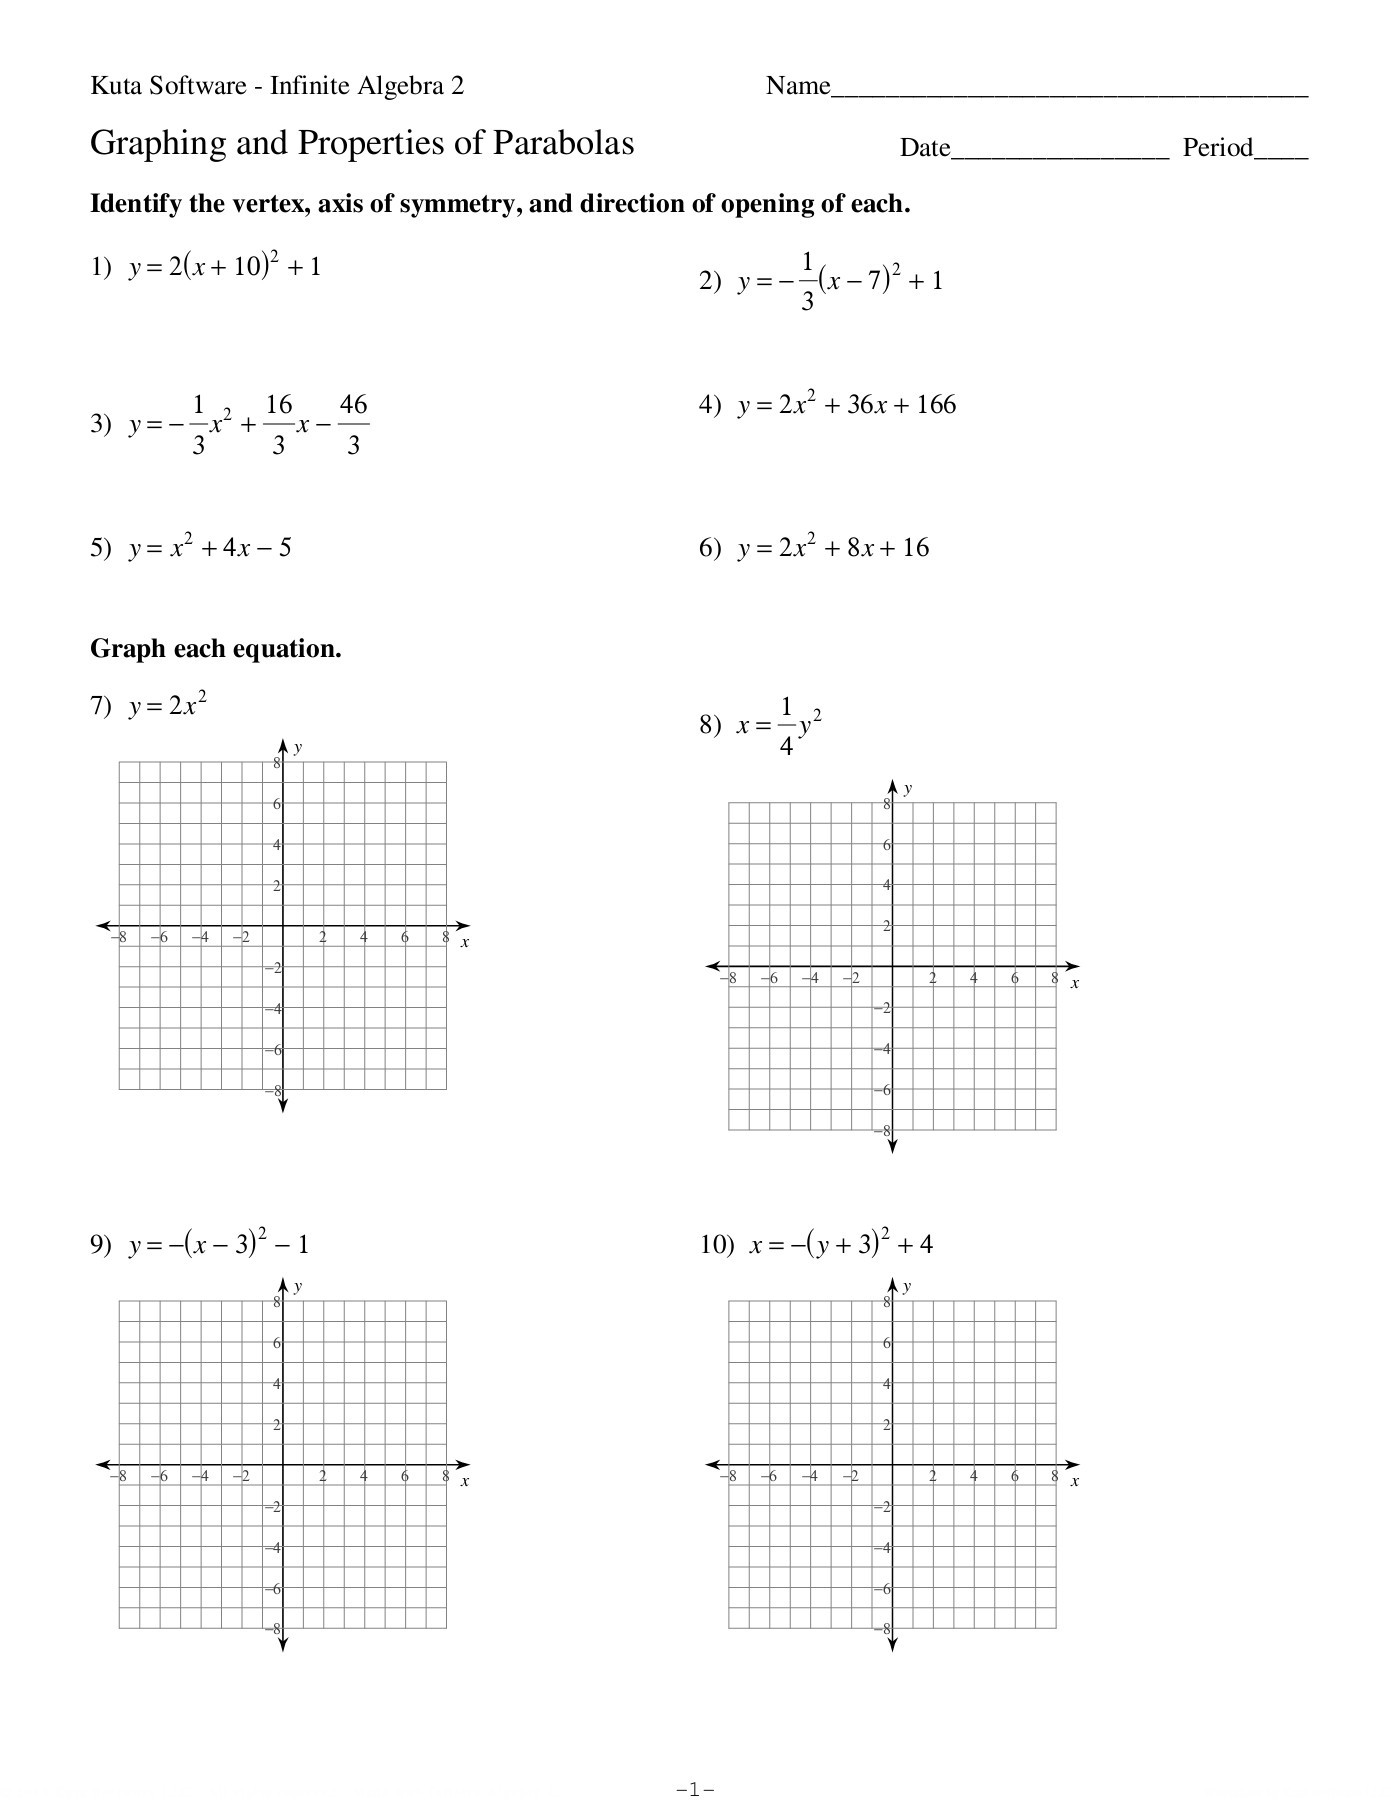 Properties Of Parabolas Worksheet Answers